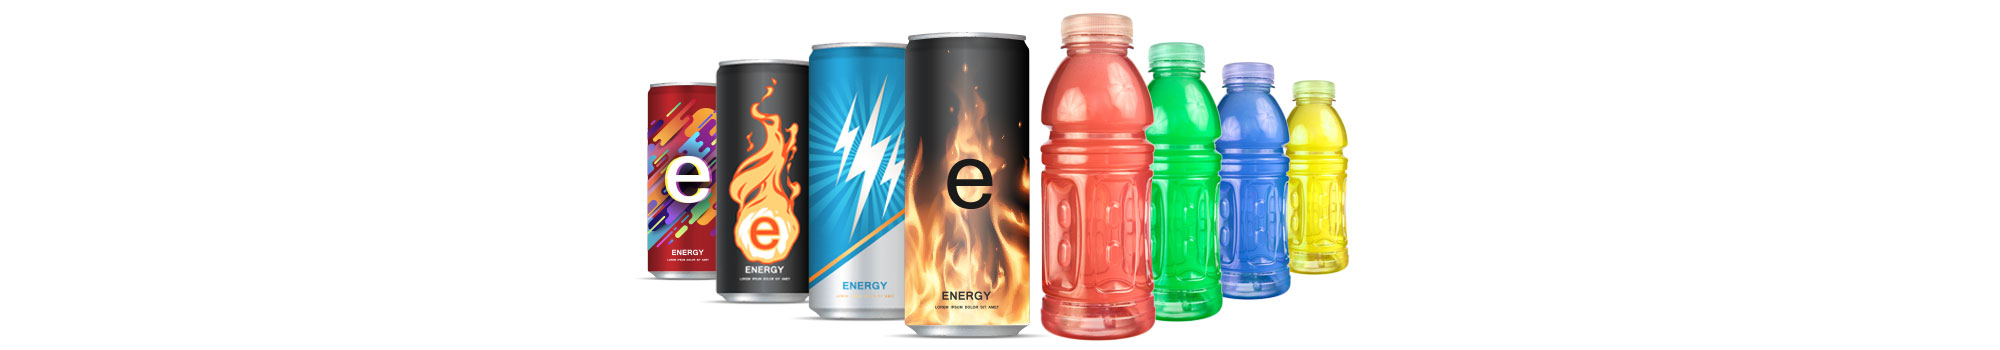 energy drink cans and sport drink bottles different colors